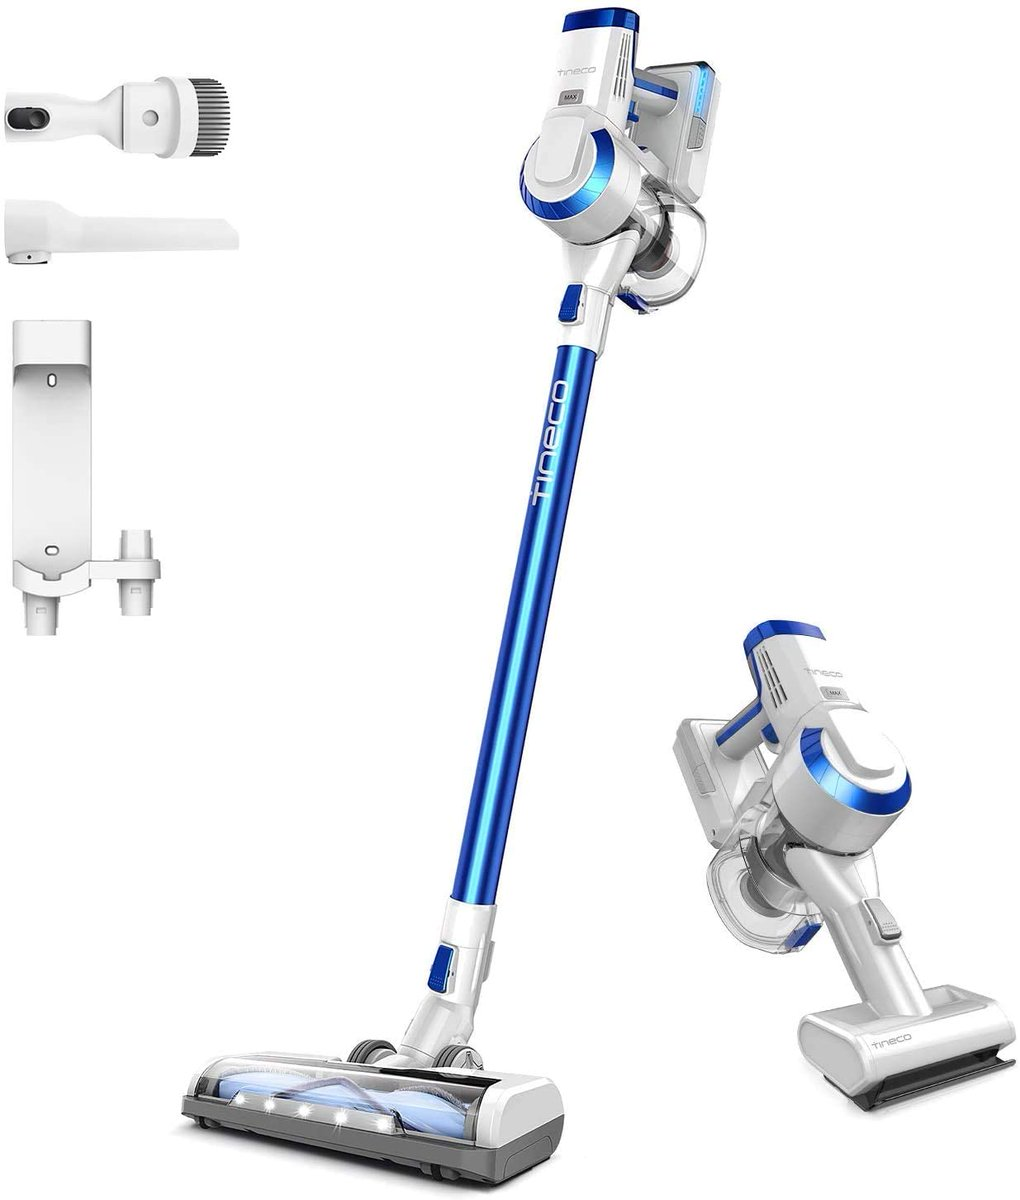 Tineco A10 Hero+ Cordless Stick Vacuum Cleaner  Only $149.99!  2